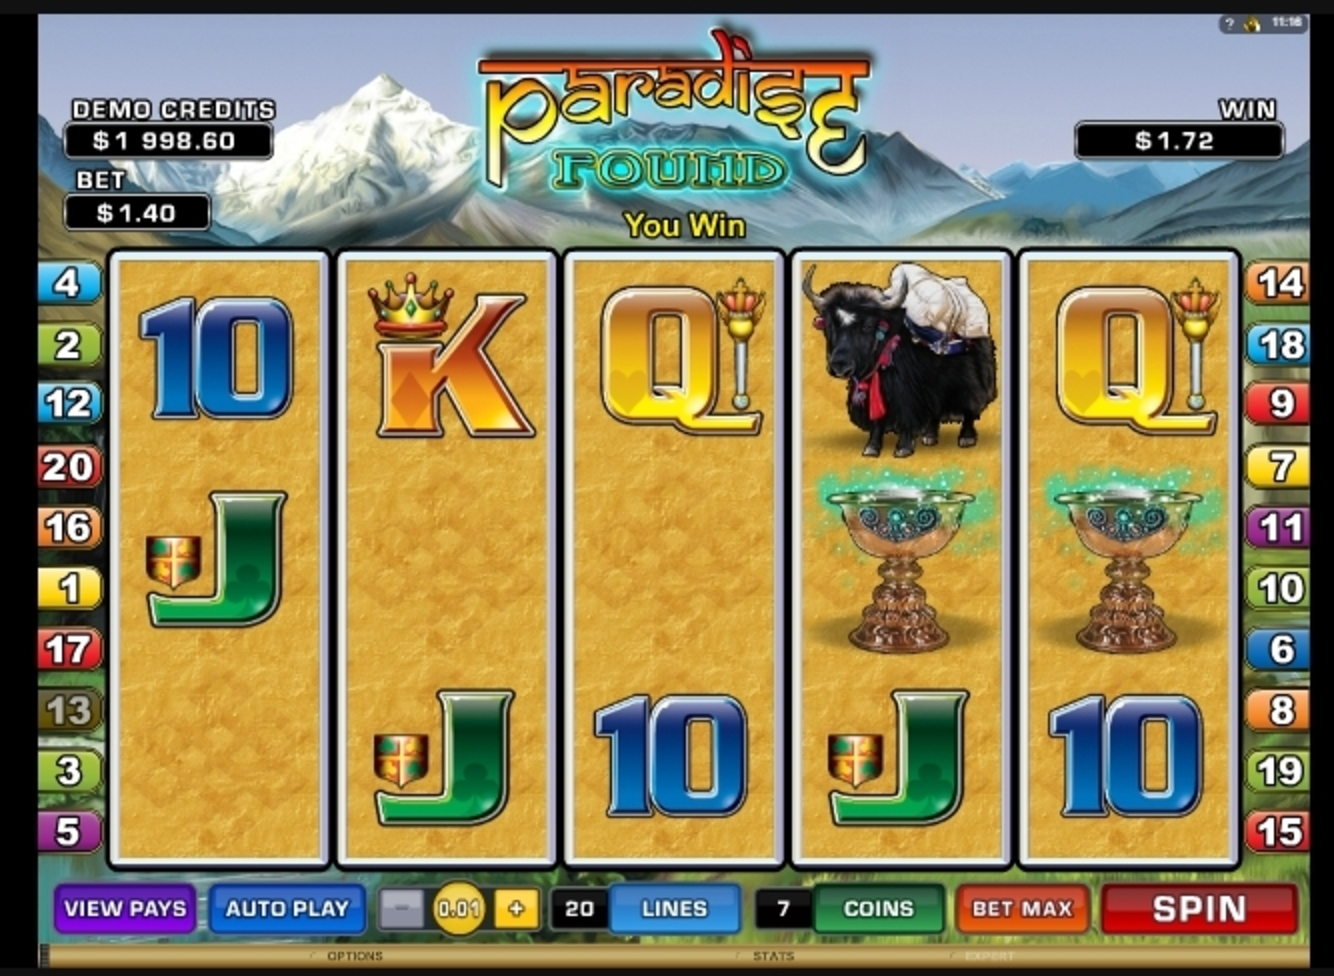 Win Money in Paradise Found Free Slot Game by Microgaming